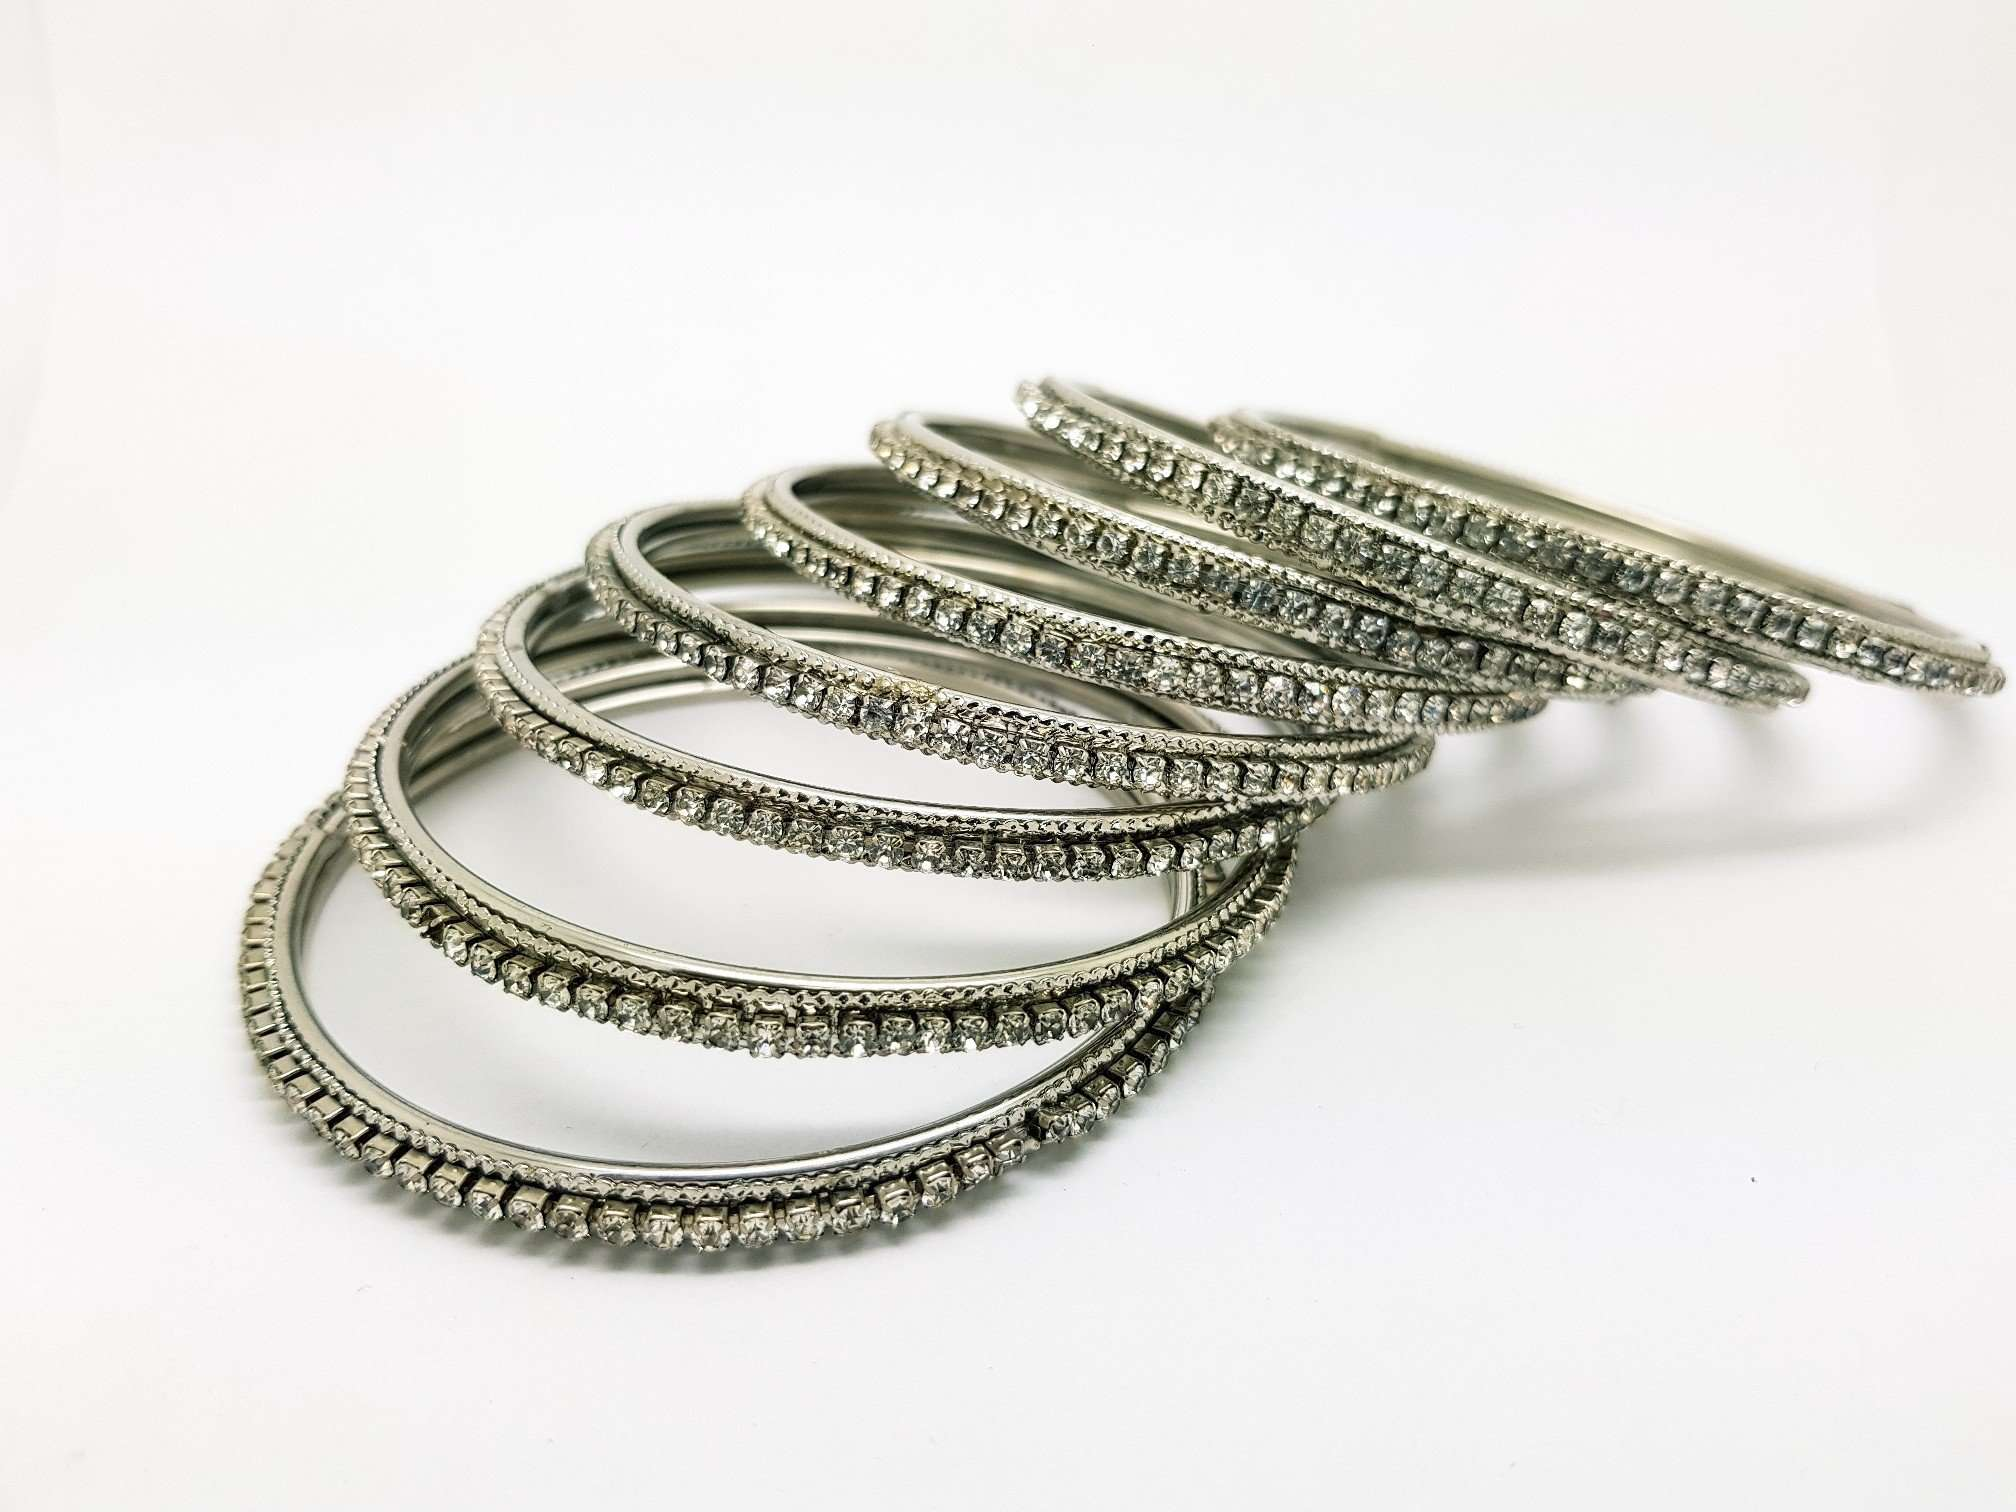 Set of Silver Finish Clear stone bangles (set of 8) - JAN1608KP-SIL-CLR - Prachy Creations